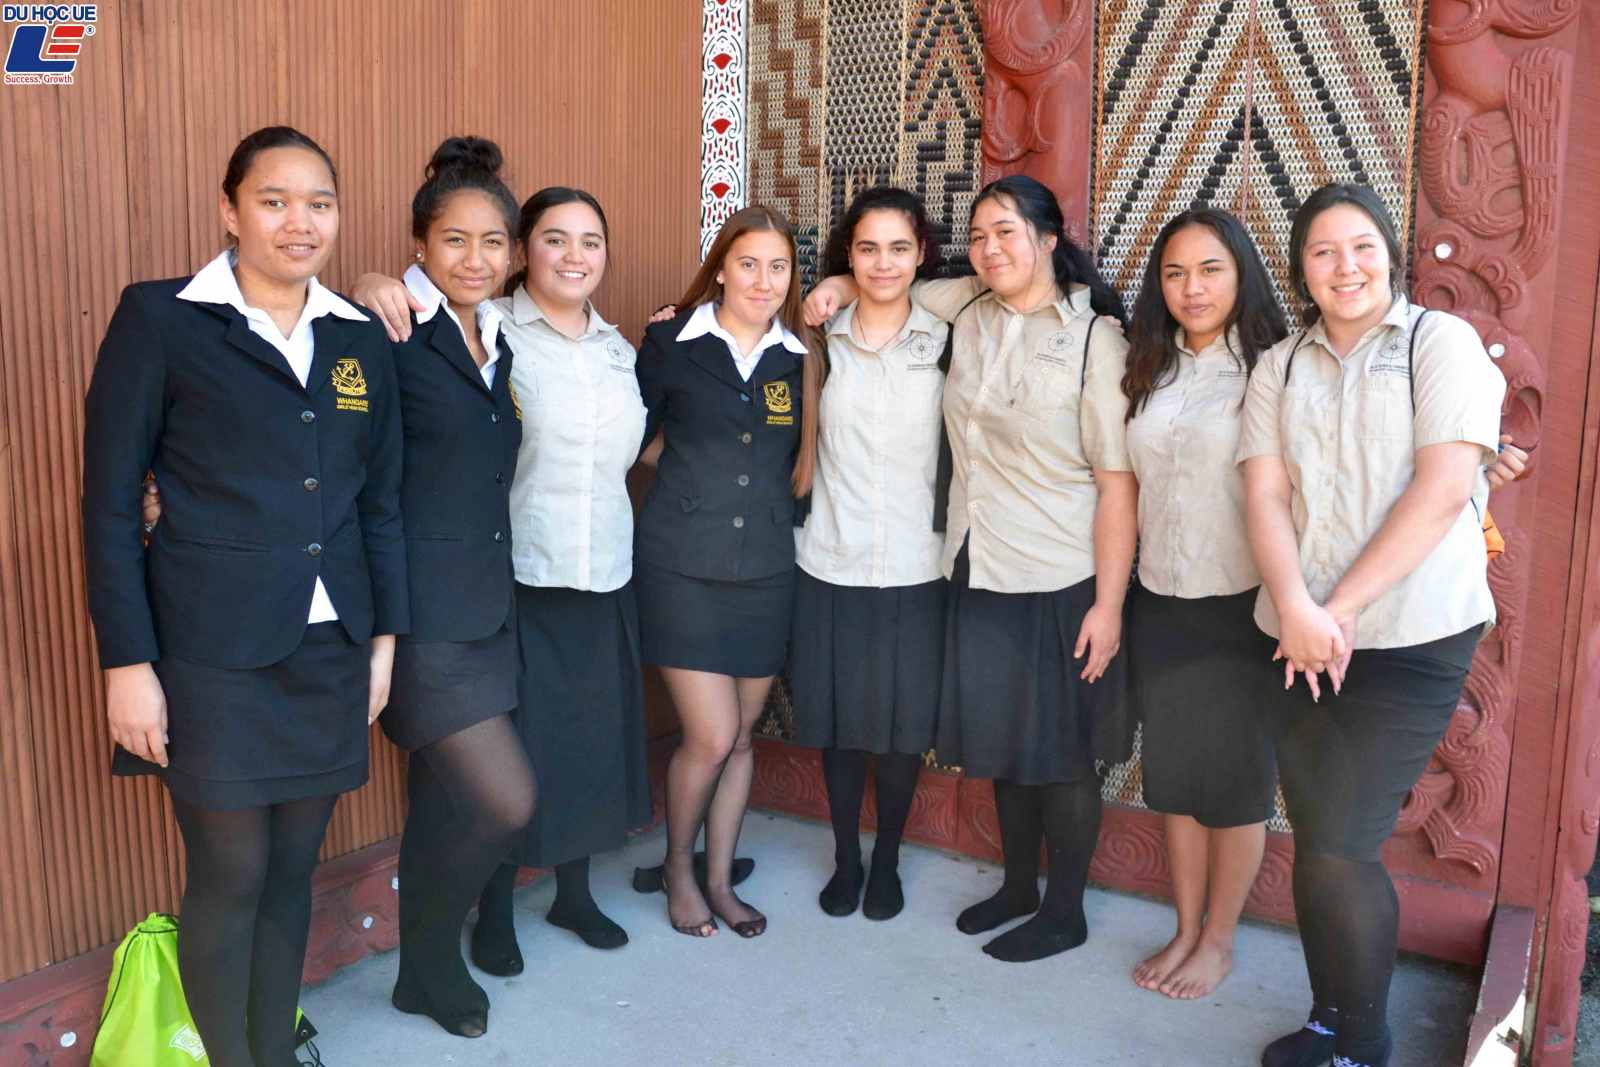 hoc-bong-du-hoc-new-zealand-moi-nhat-tu-truong-whangarei-girls-high-school-nien-khoa-2020-2021 3